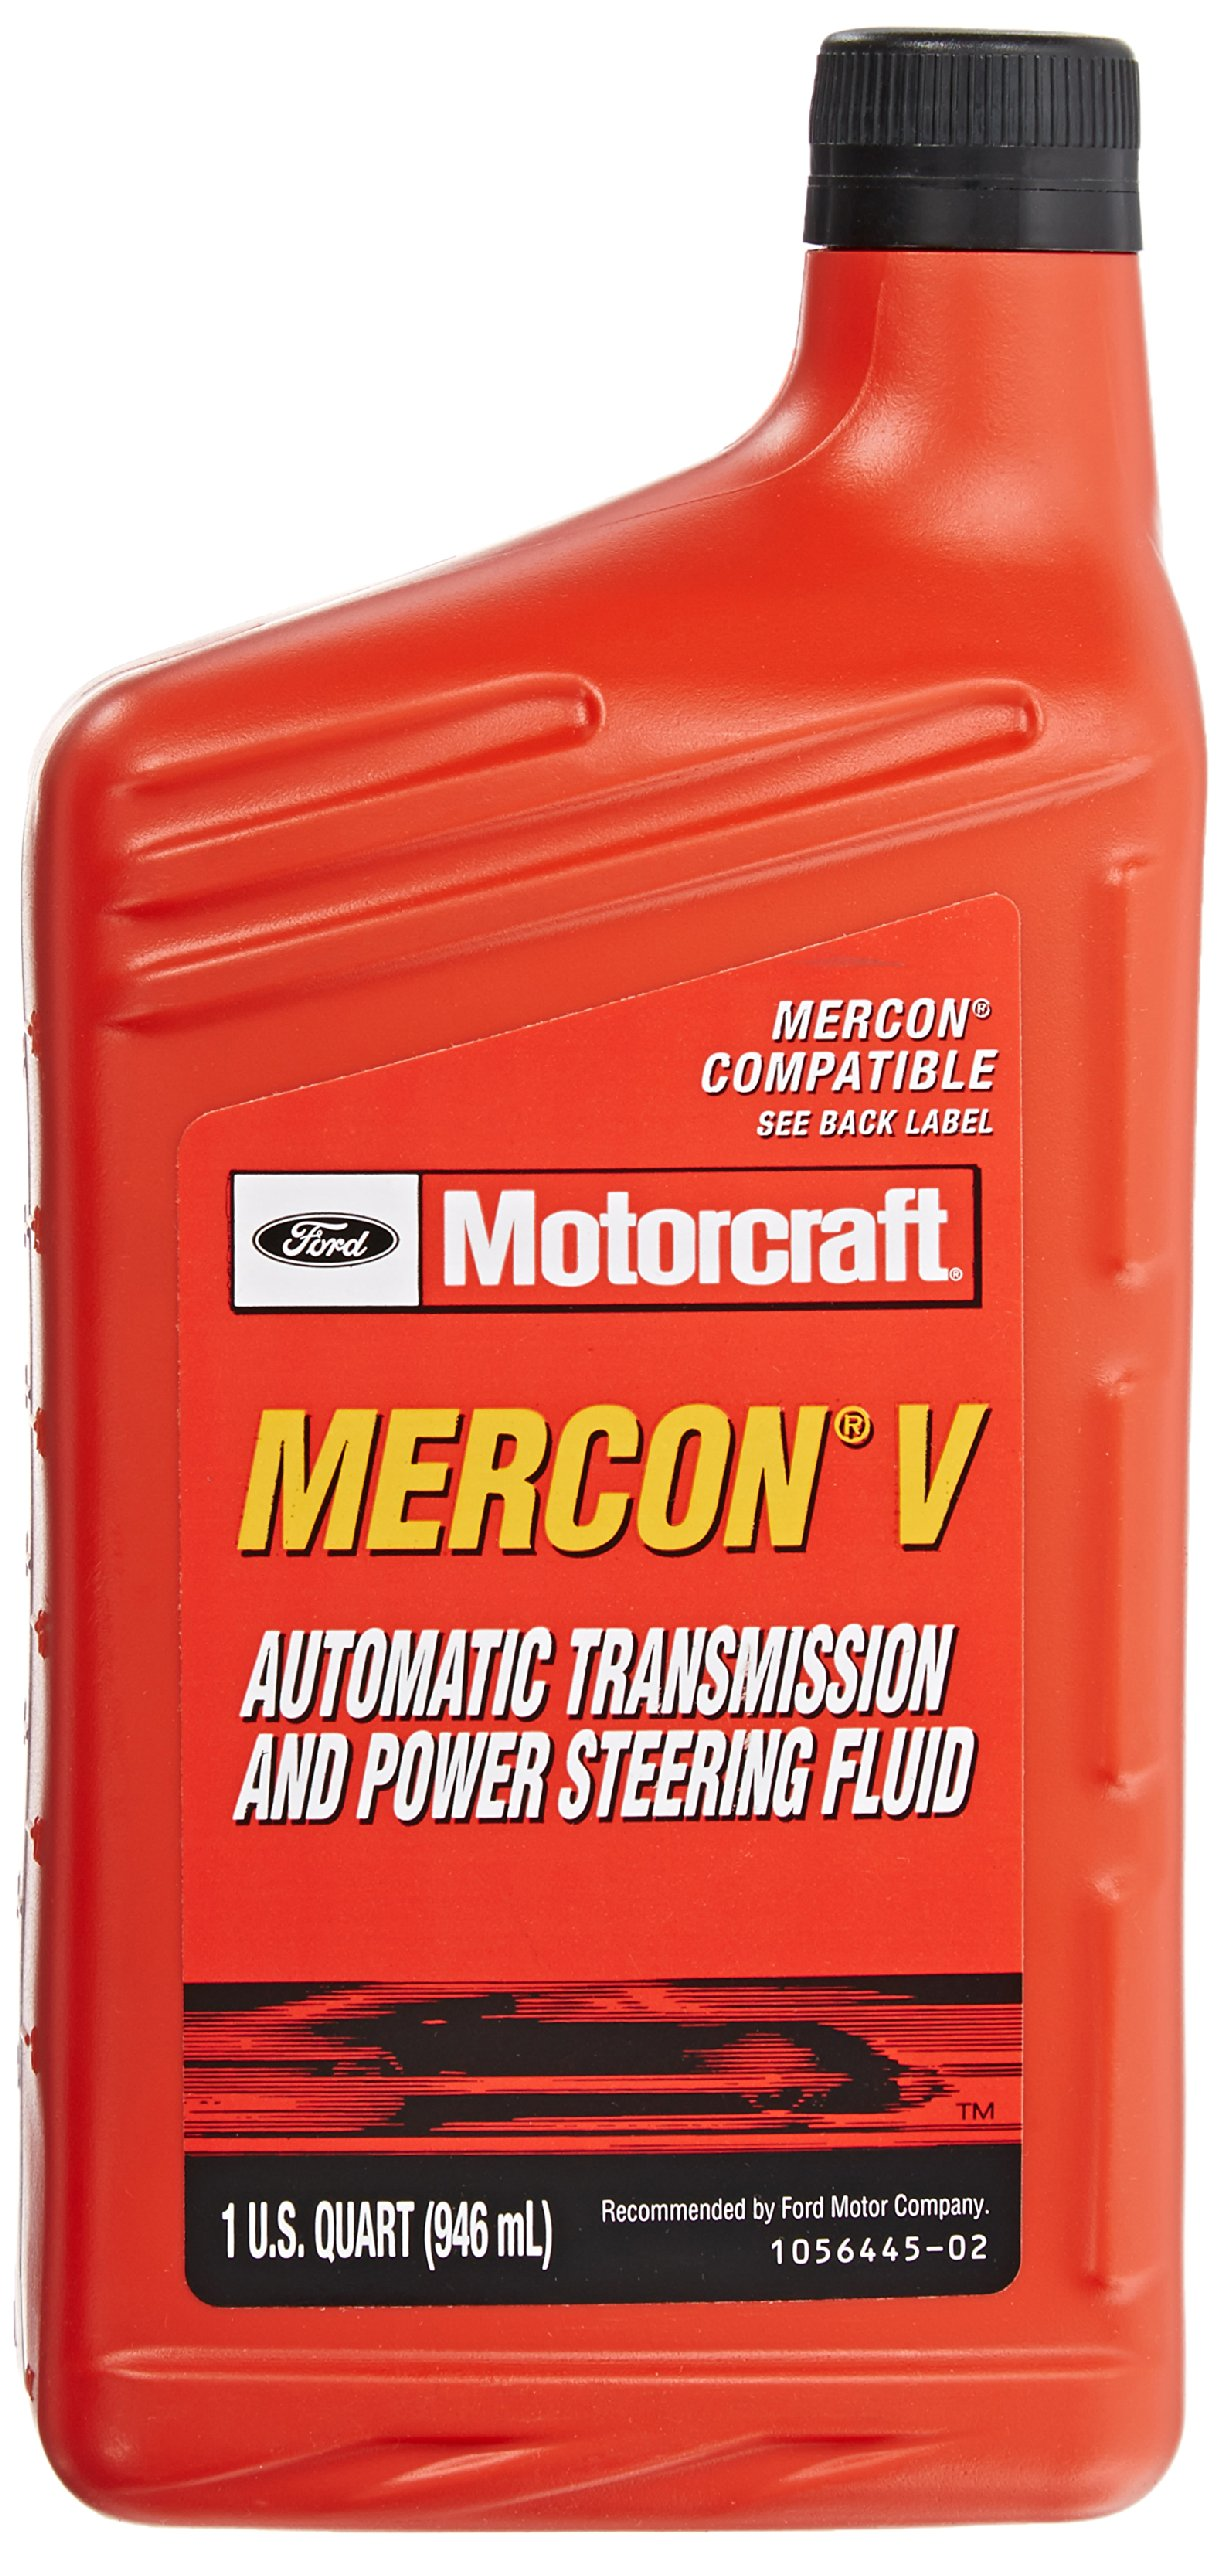 Genuine Ford XT-5-QM MERCON-V Automatic Transmission and Power Steering Fluid - 1 Quart